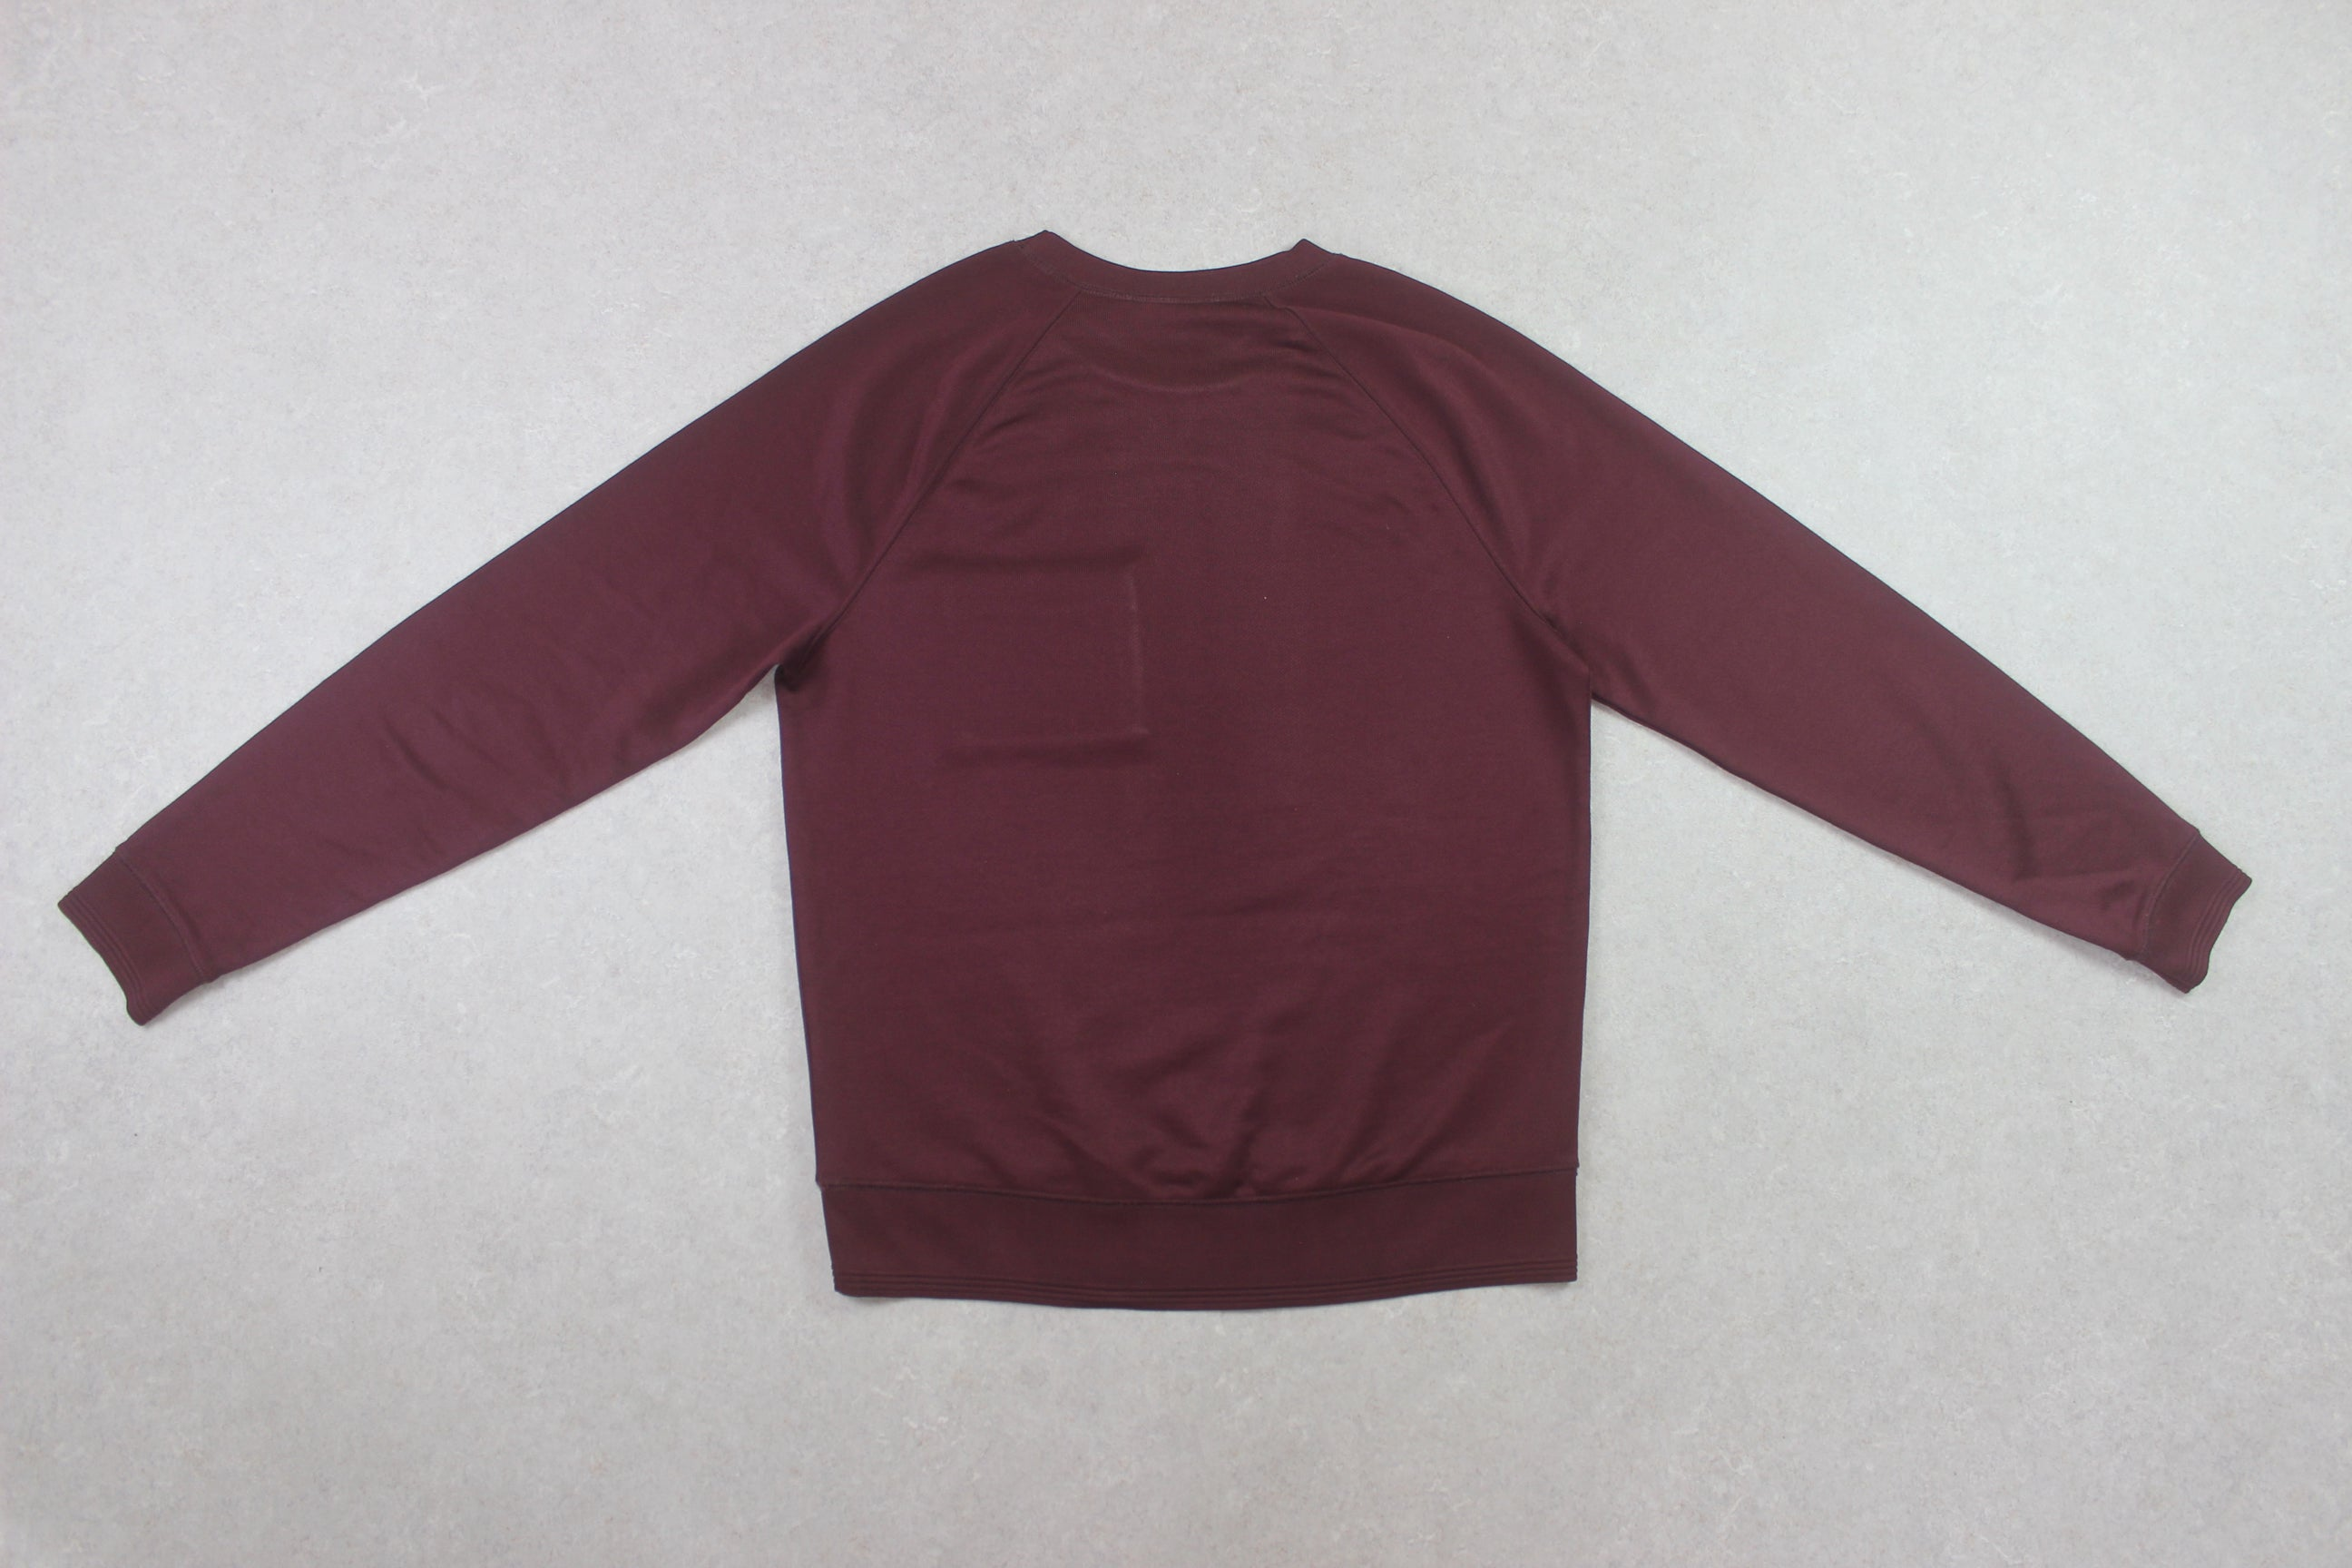 Acne Studios - Sweatshirt Jumper - Burgundy - Small